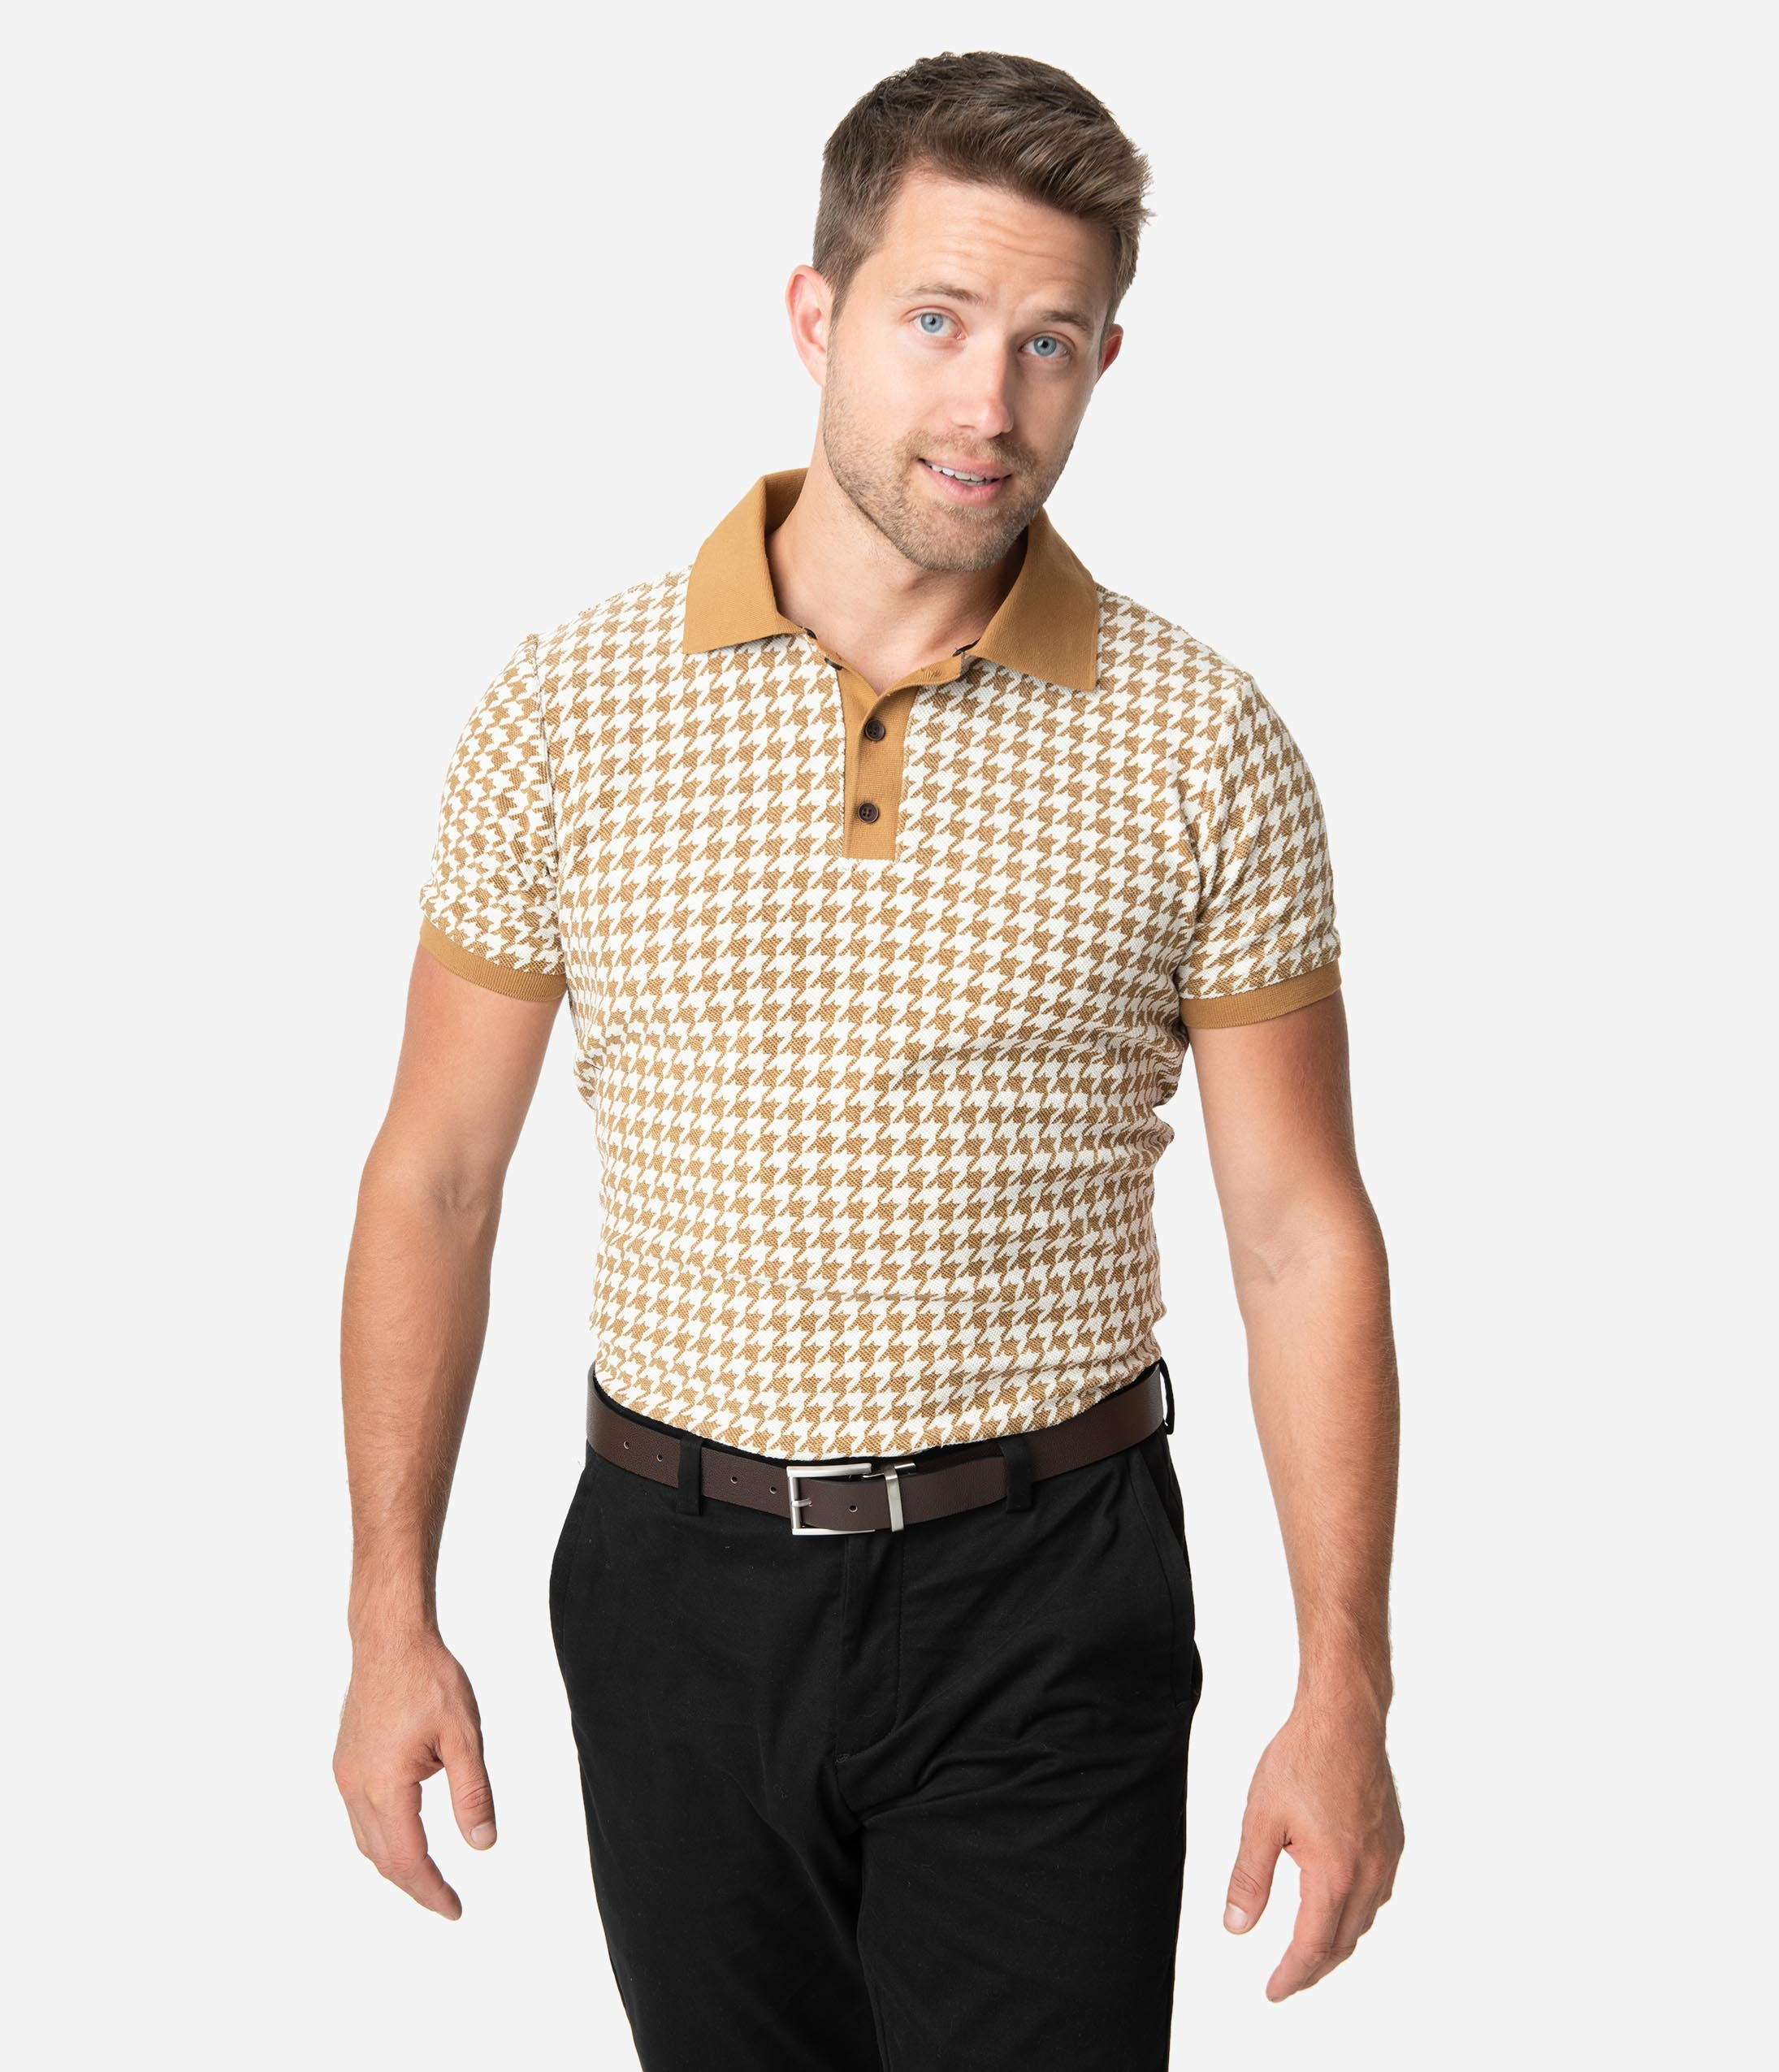 1940s Style Mens Shirts, Sweaters, Vests Collectif 1960S Mustard Houndstooth Short Sleeve Pablo Mens Polo Shirt $48.00 AT vintagedancer.com